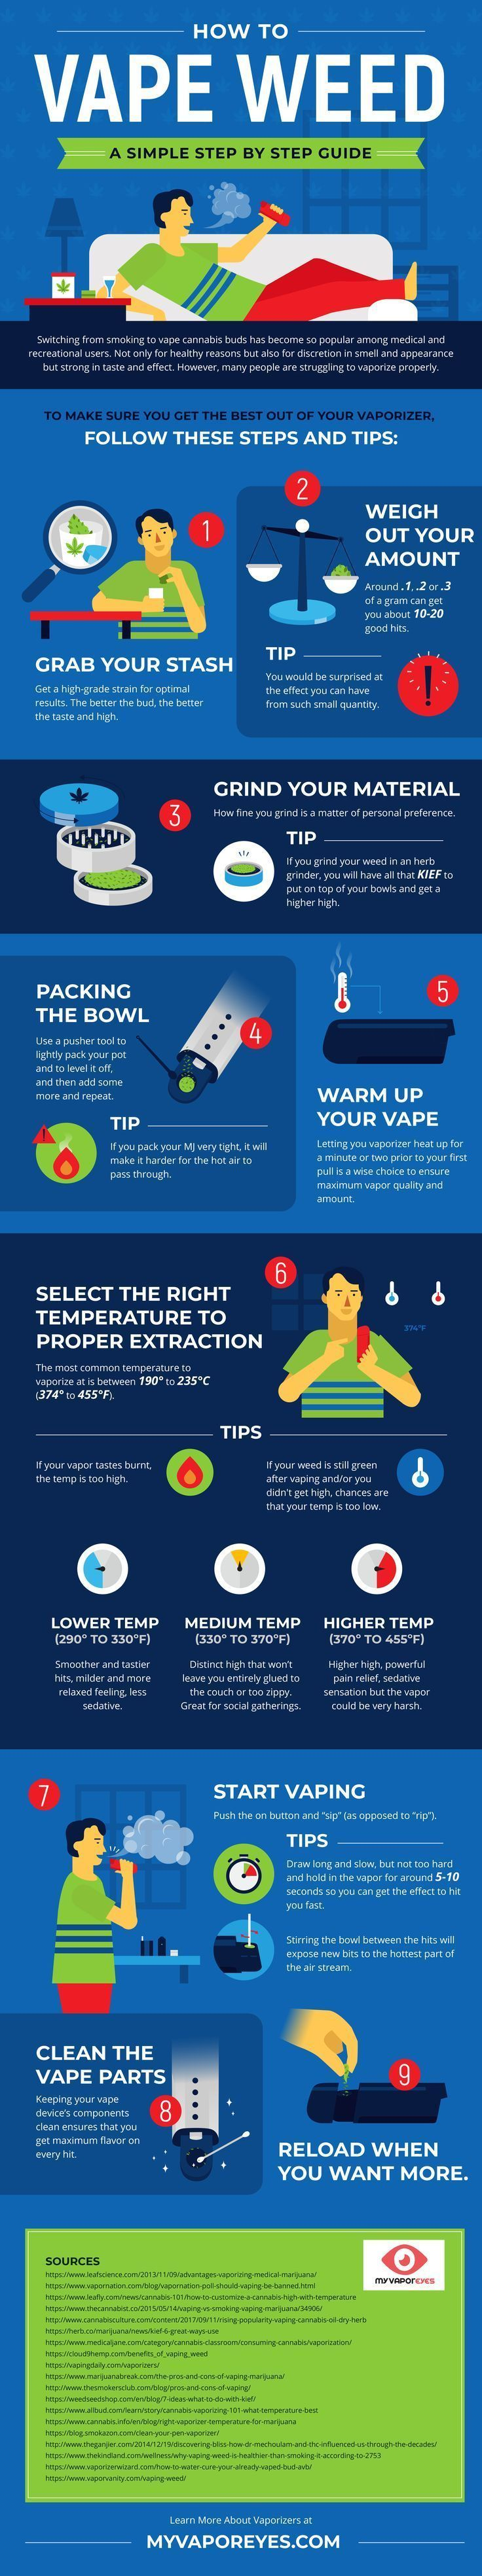 How to Vape Weed - Infographic. A simple step by step guide for vaping marijuana efficiently